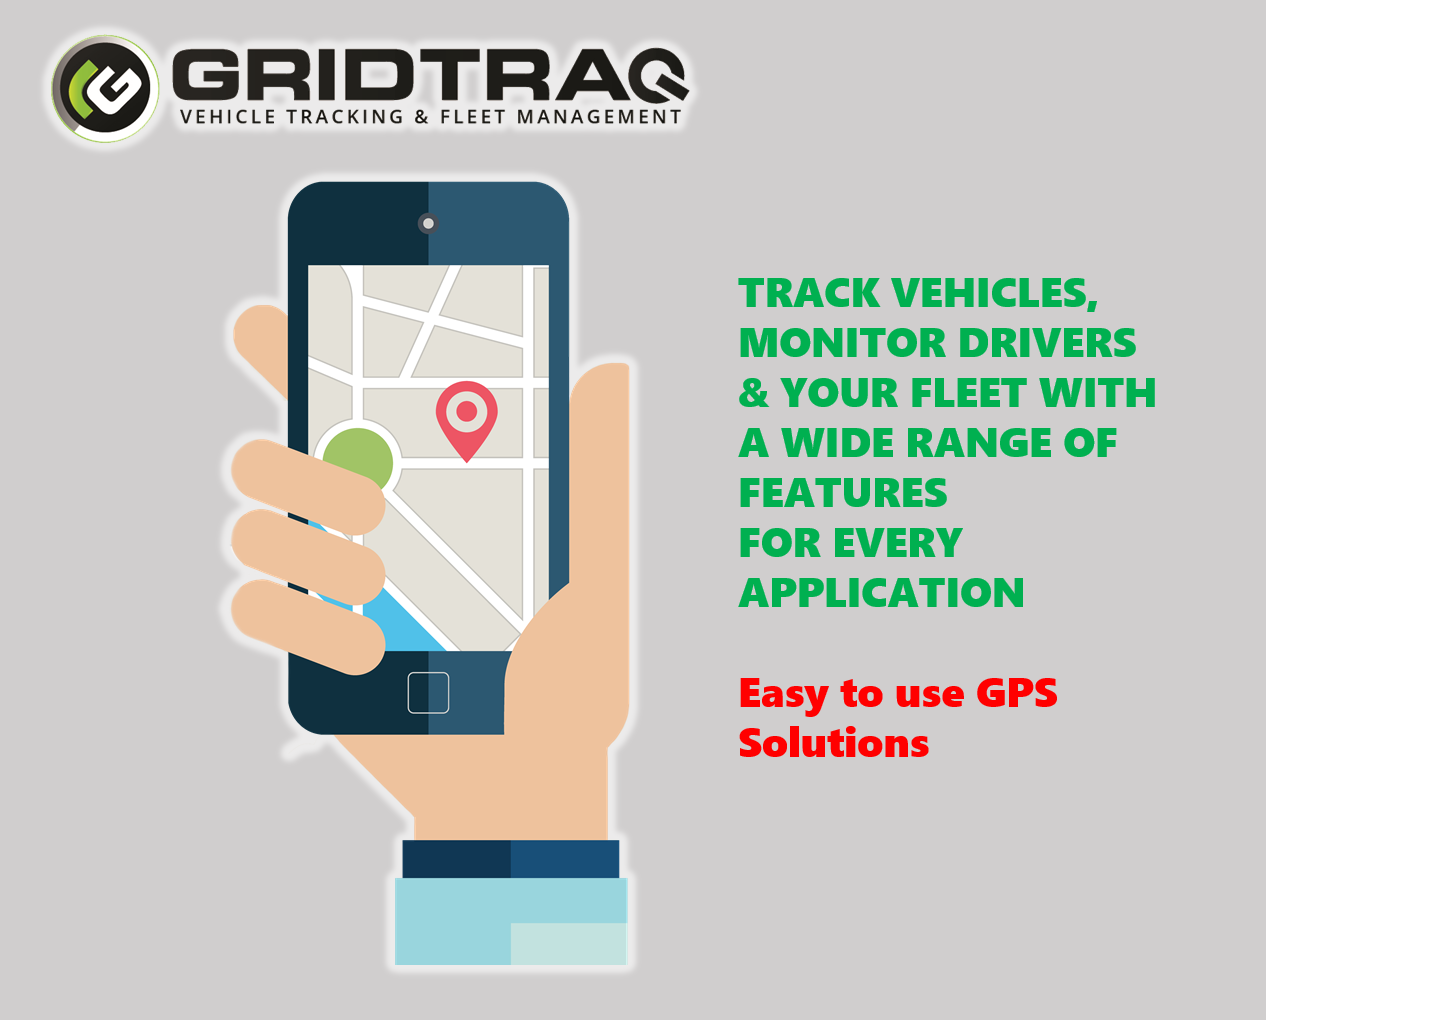 Audio Visual Security | Gridtraq GPS